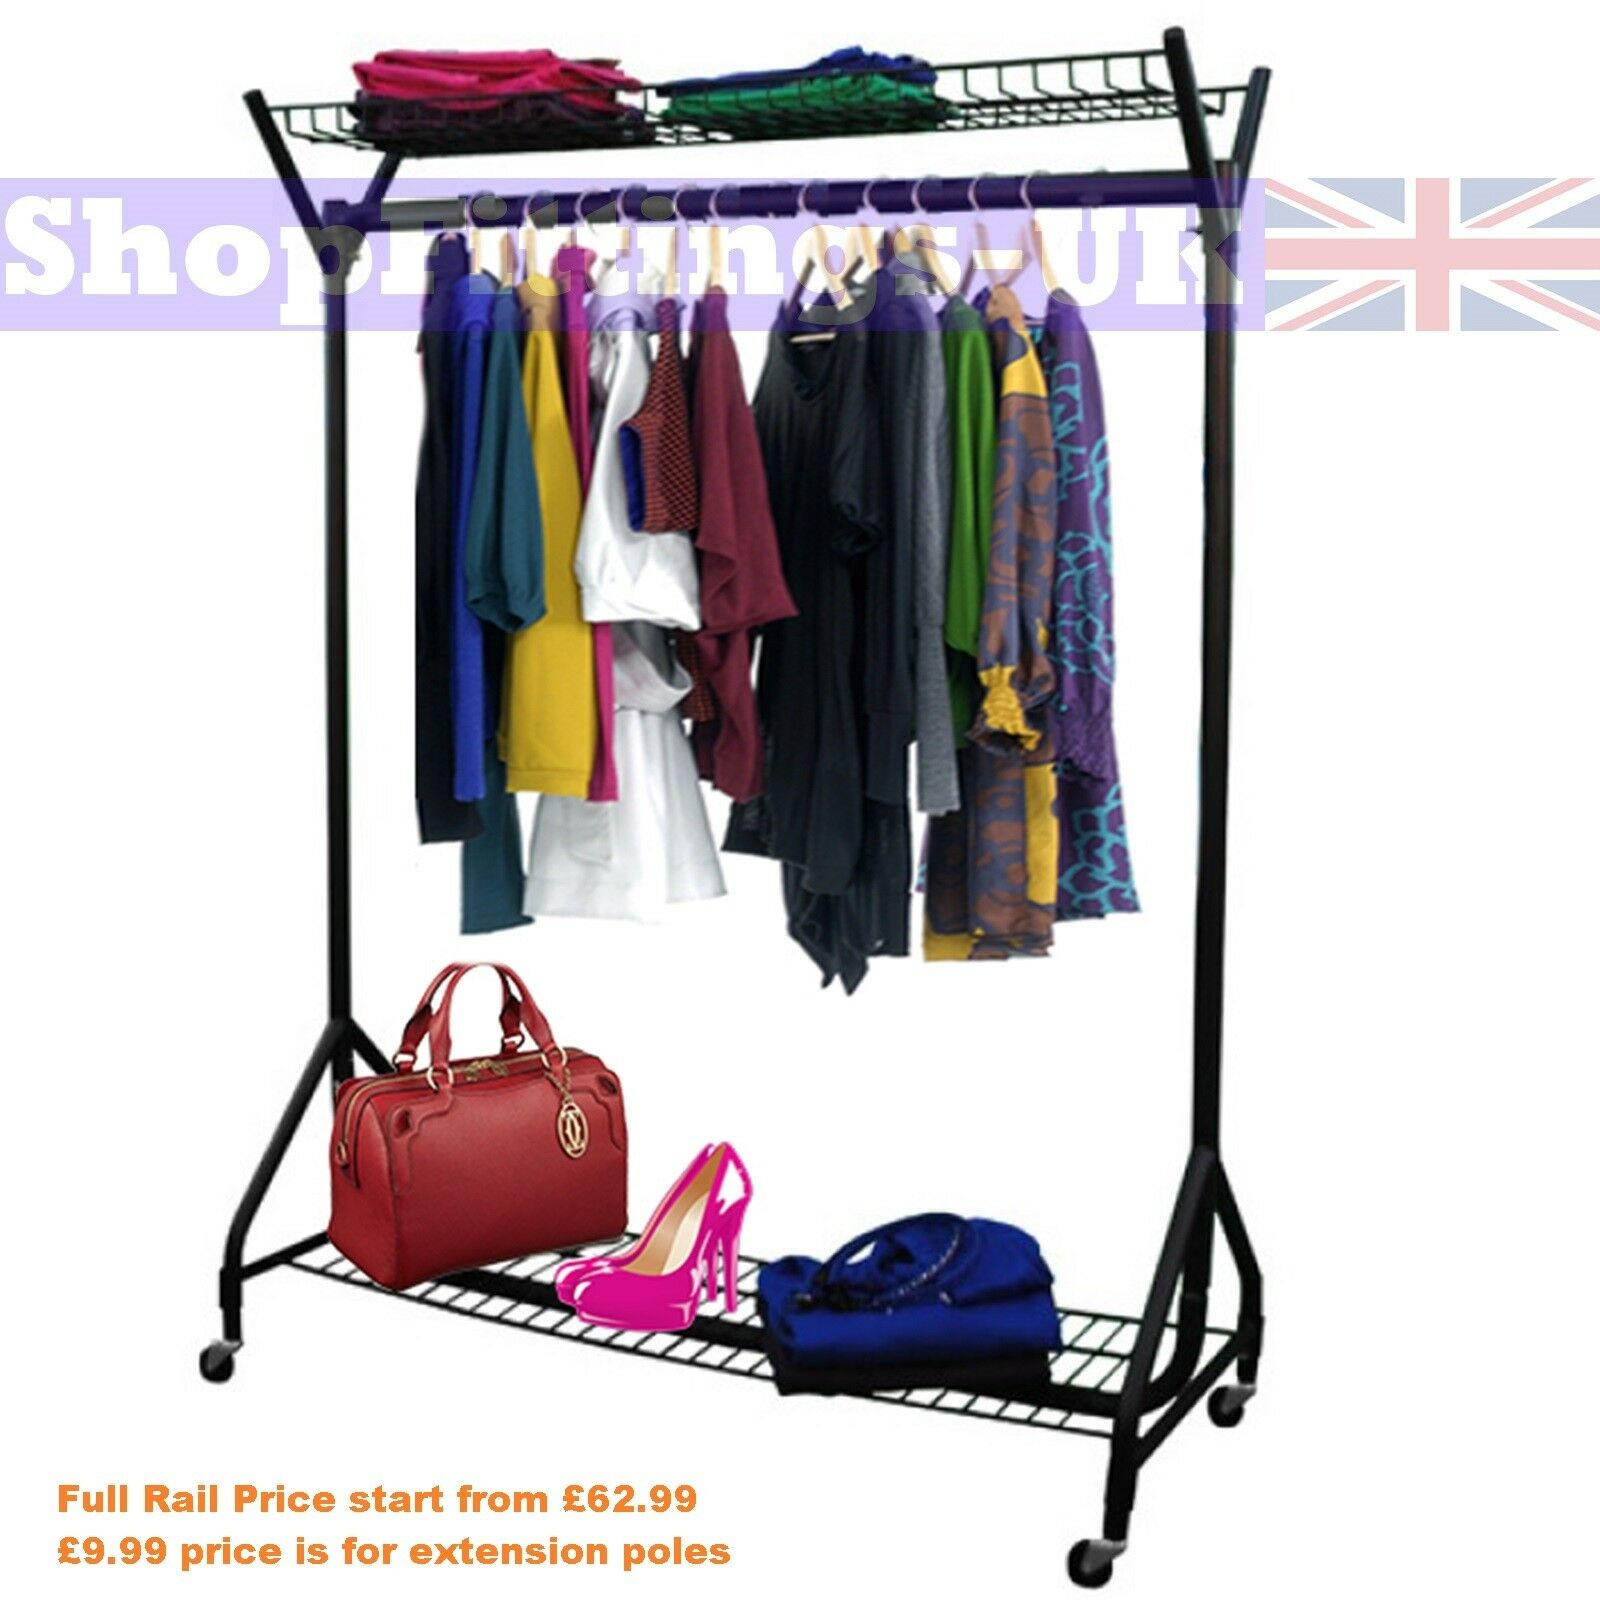 china productimage display stand clothes wall rack shop metal hanging garment retail shelf iron tbfmhighquuo